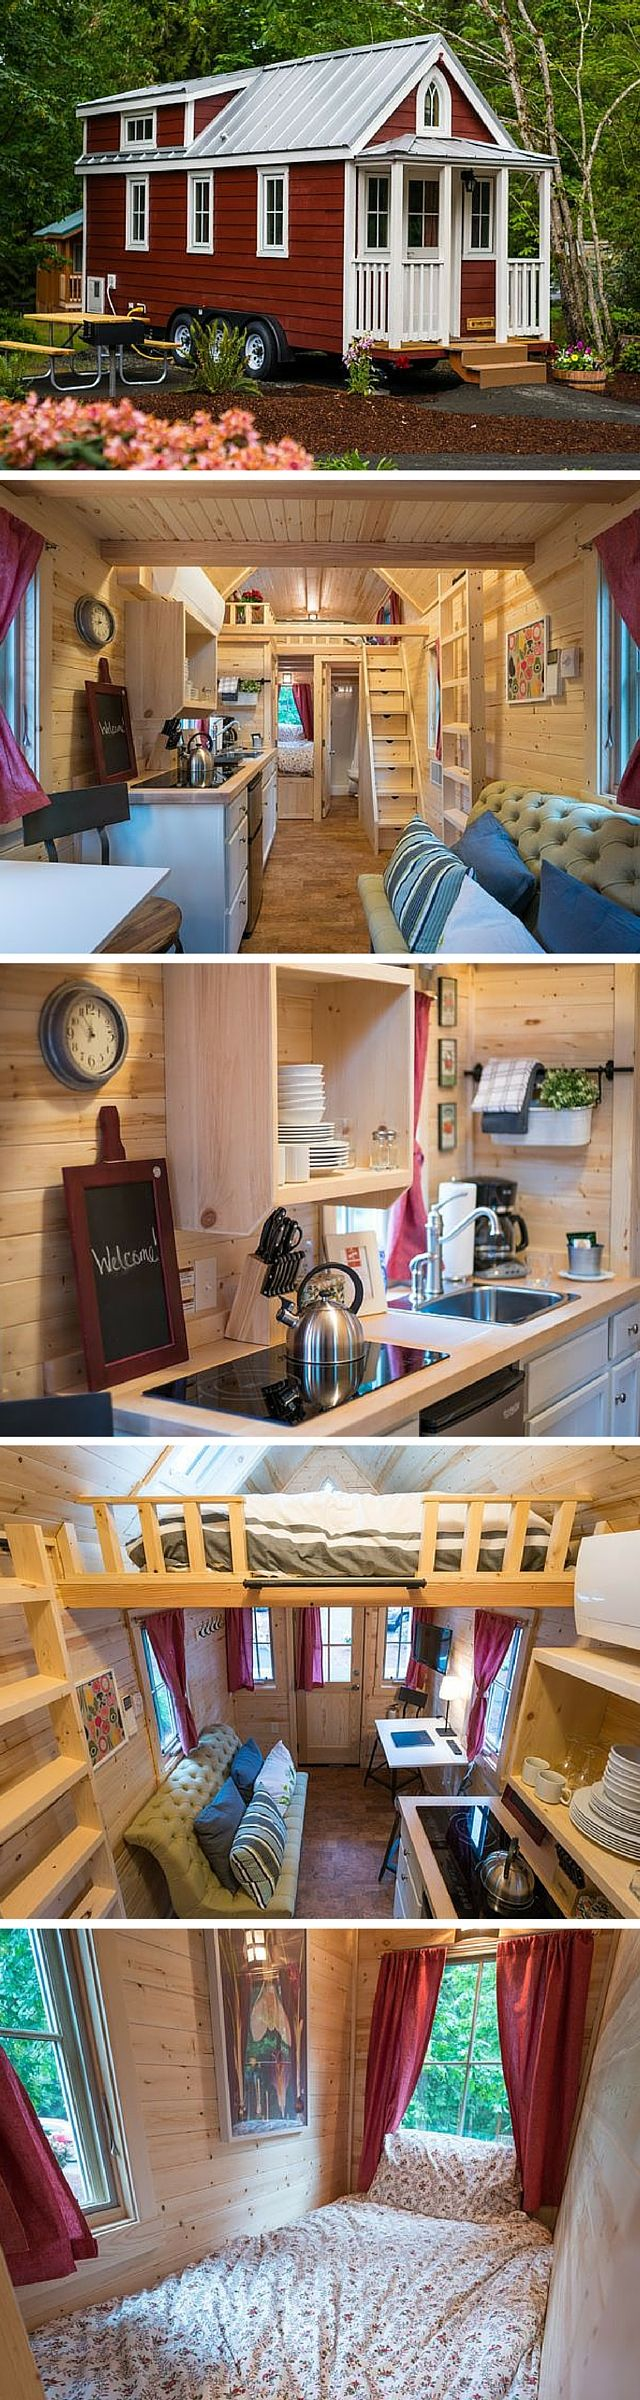 25 best tiny house bedroom ideas on pinterest building a tiny house tiny house family and. Black Bedroom Furniture Sets. Home Design Ideas